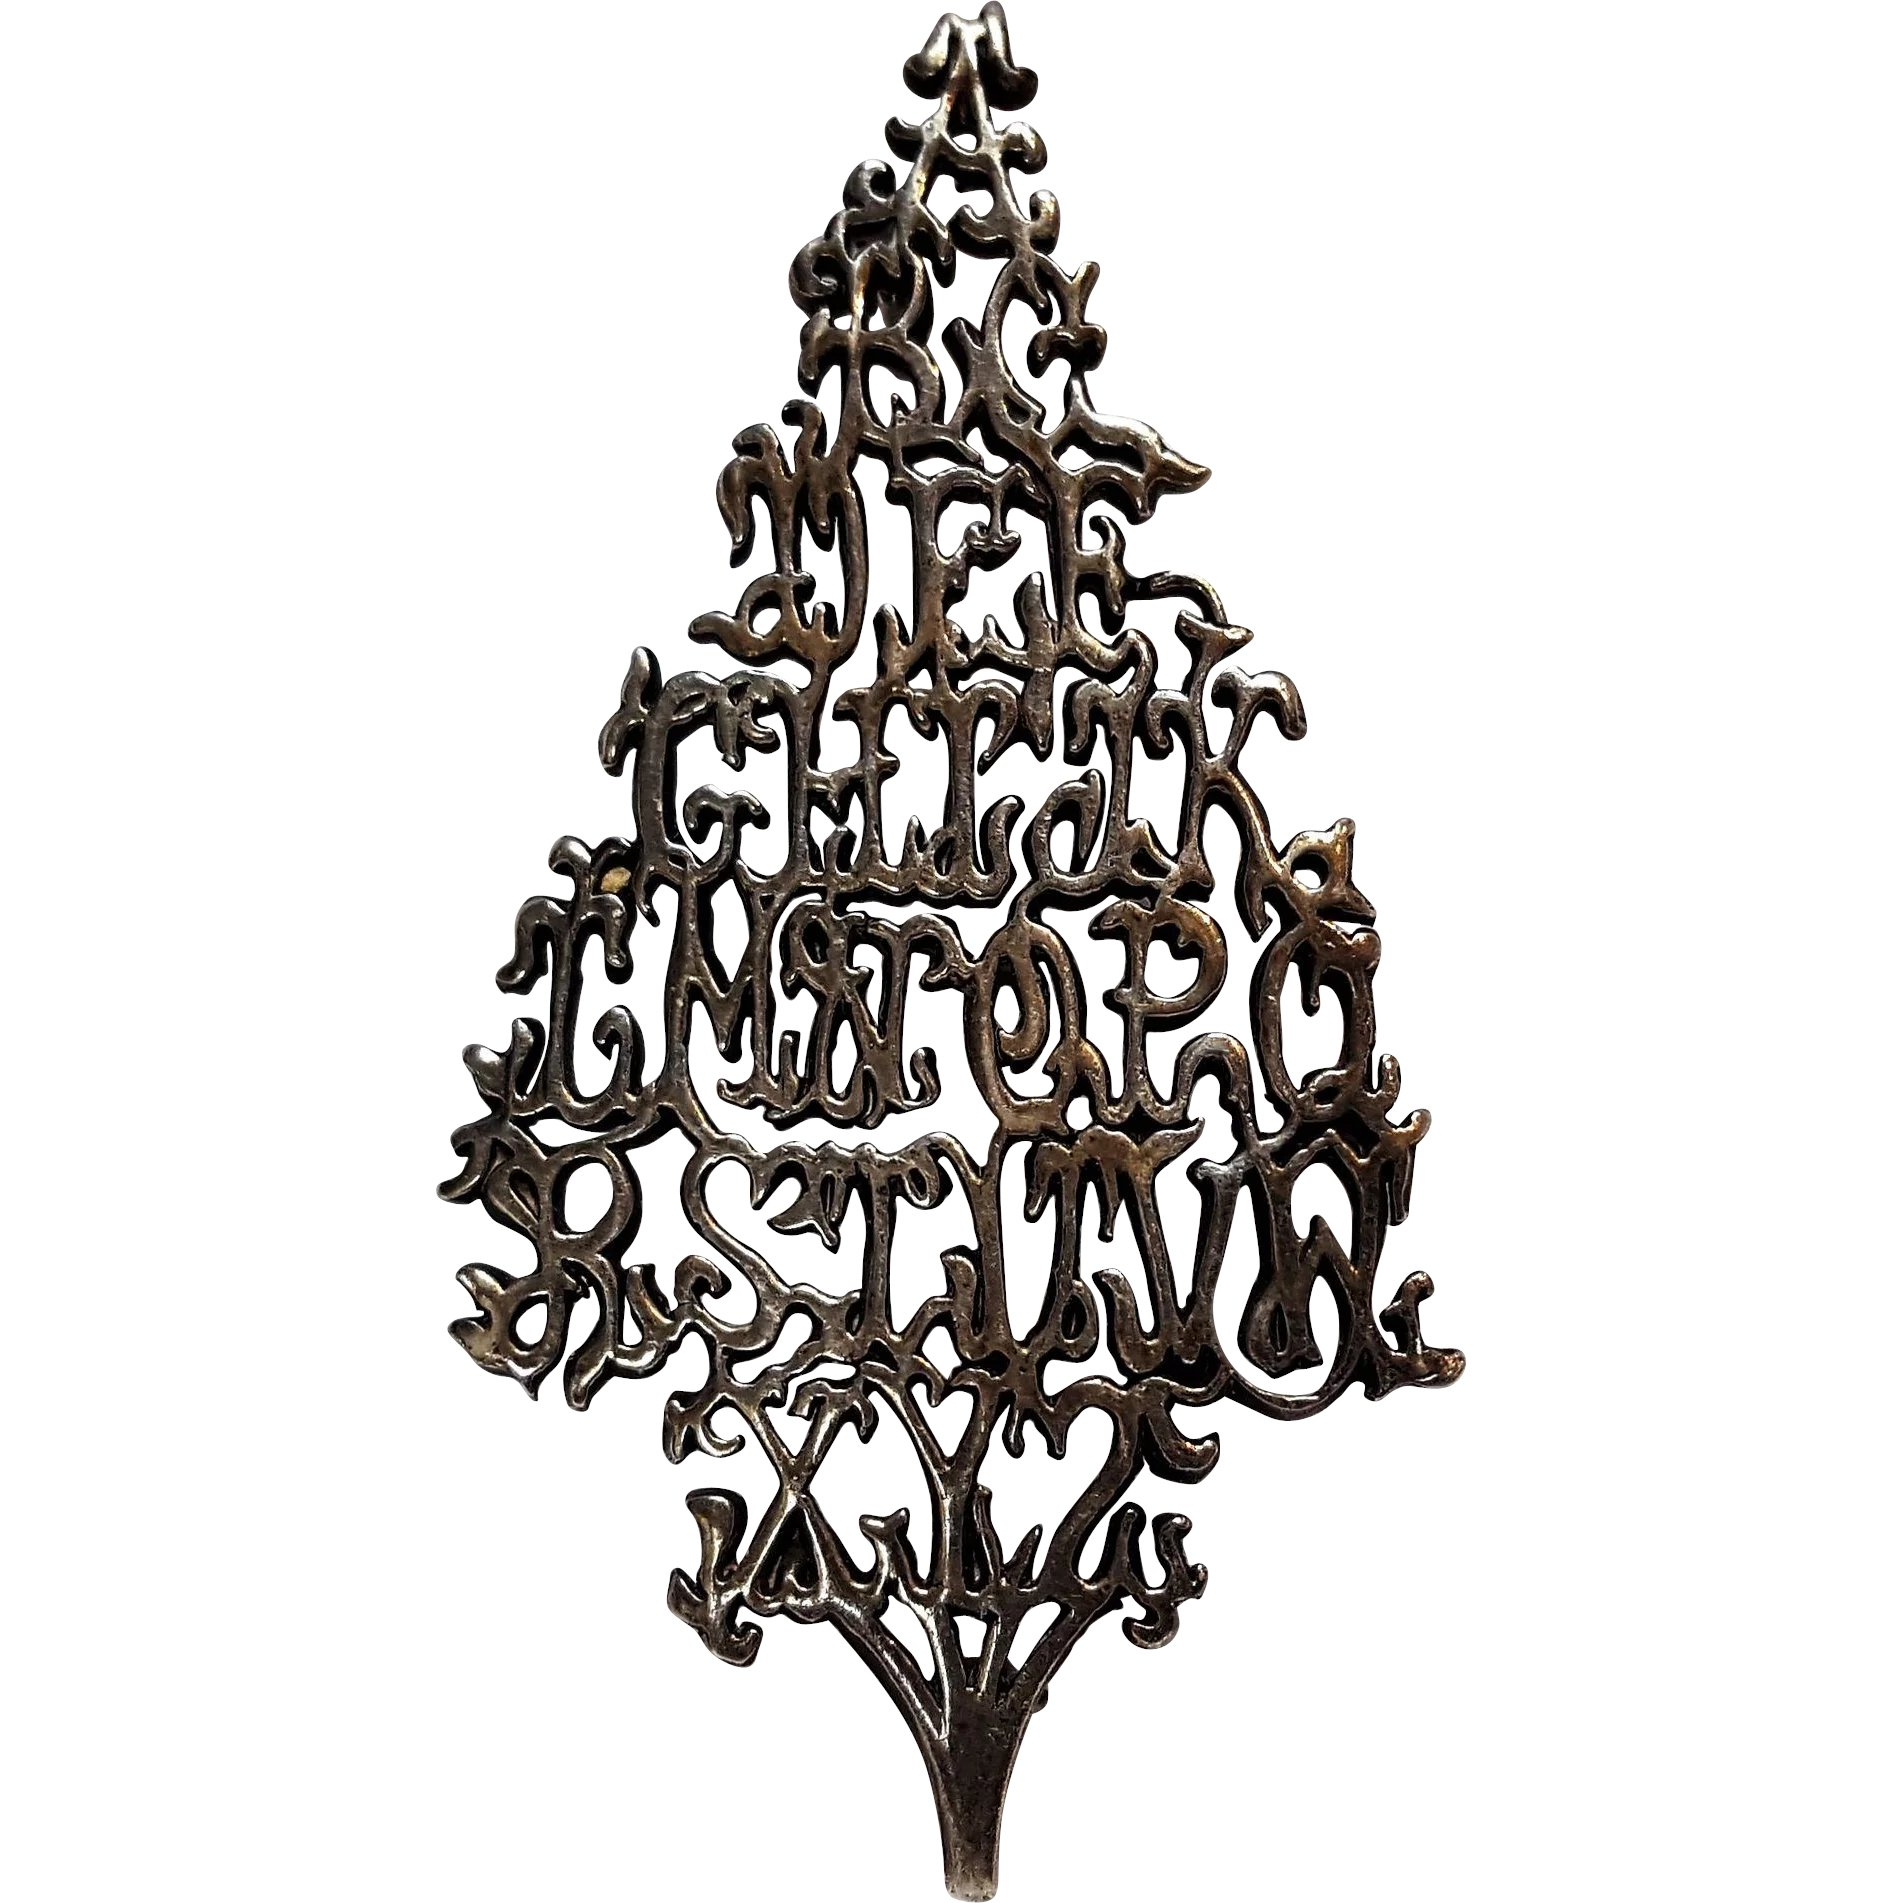 Wonderful Alphabet Sterling Silver Christmas Tree Pin : Green Mannequin | Ruby Lane